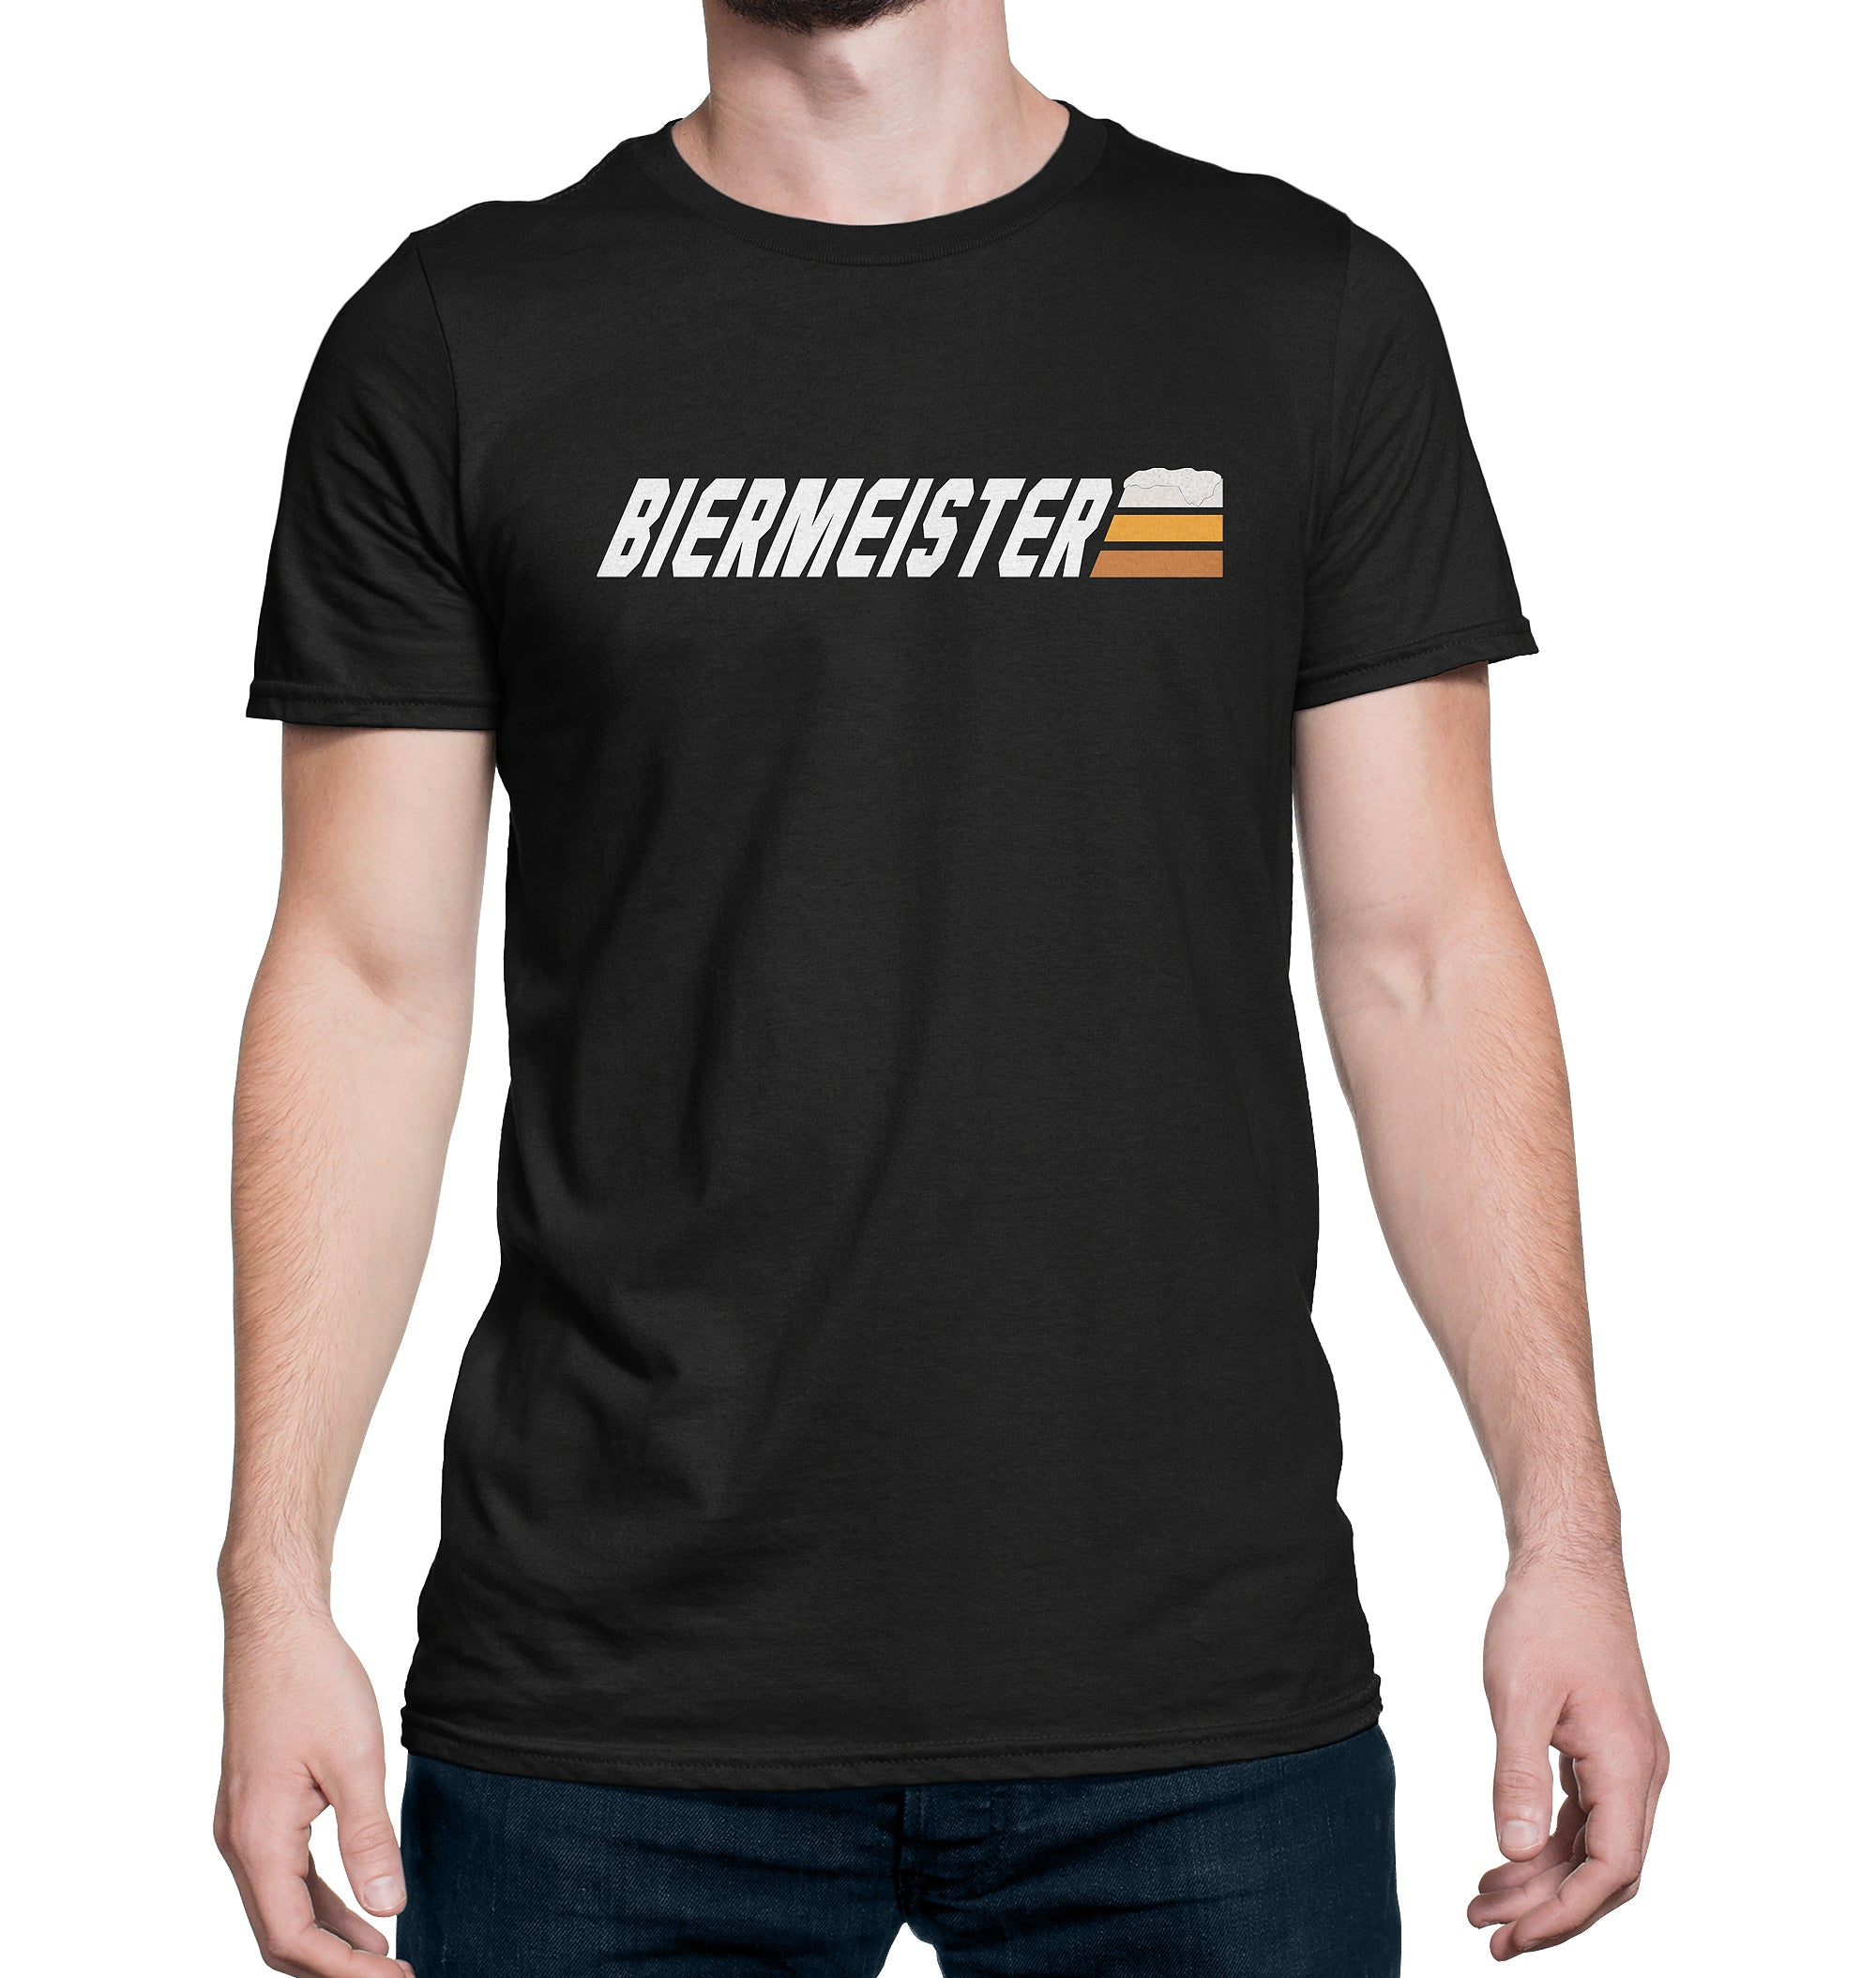 Biermeister Master of Beer T-Shirt on Model